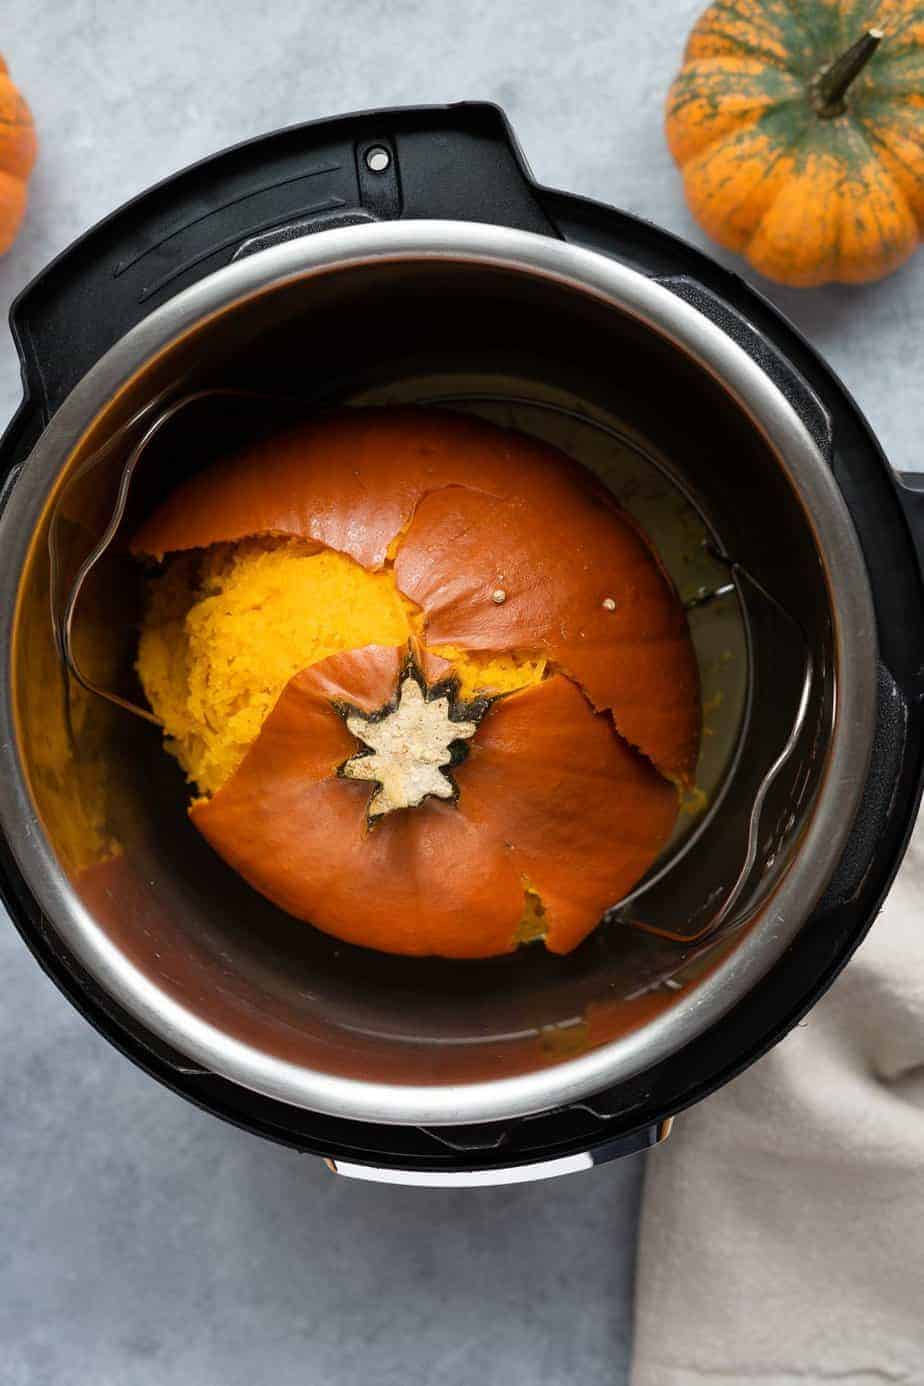 After pressure cooking the pumpkin to make puree.